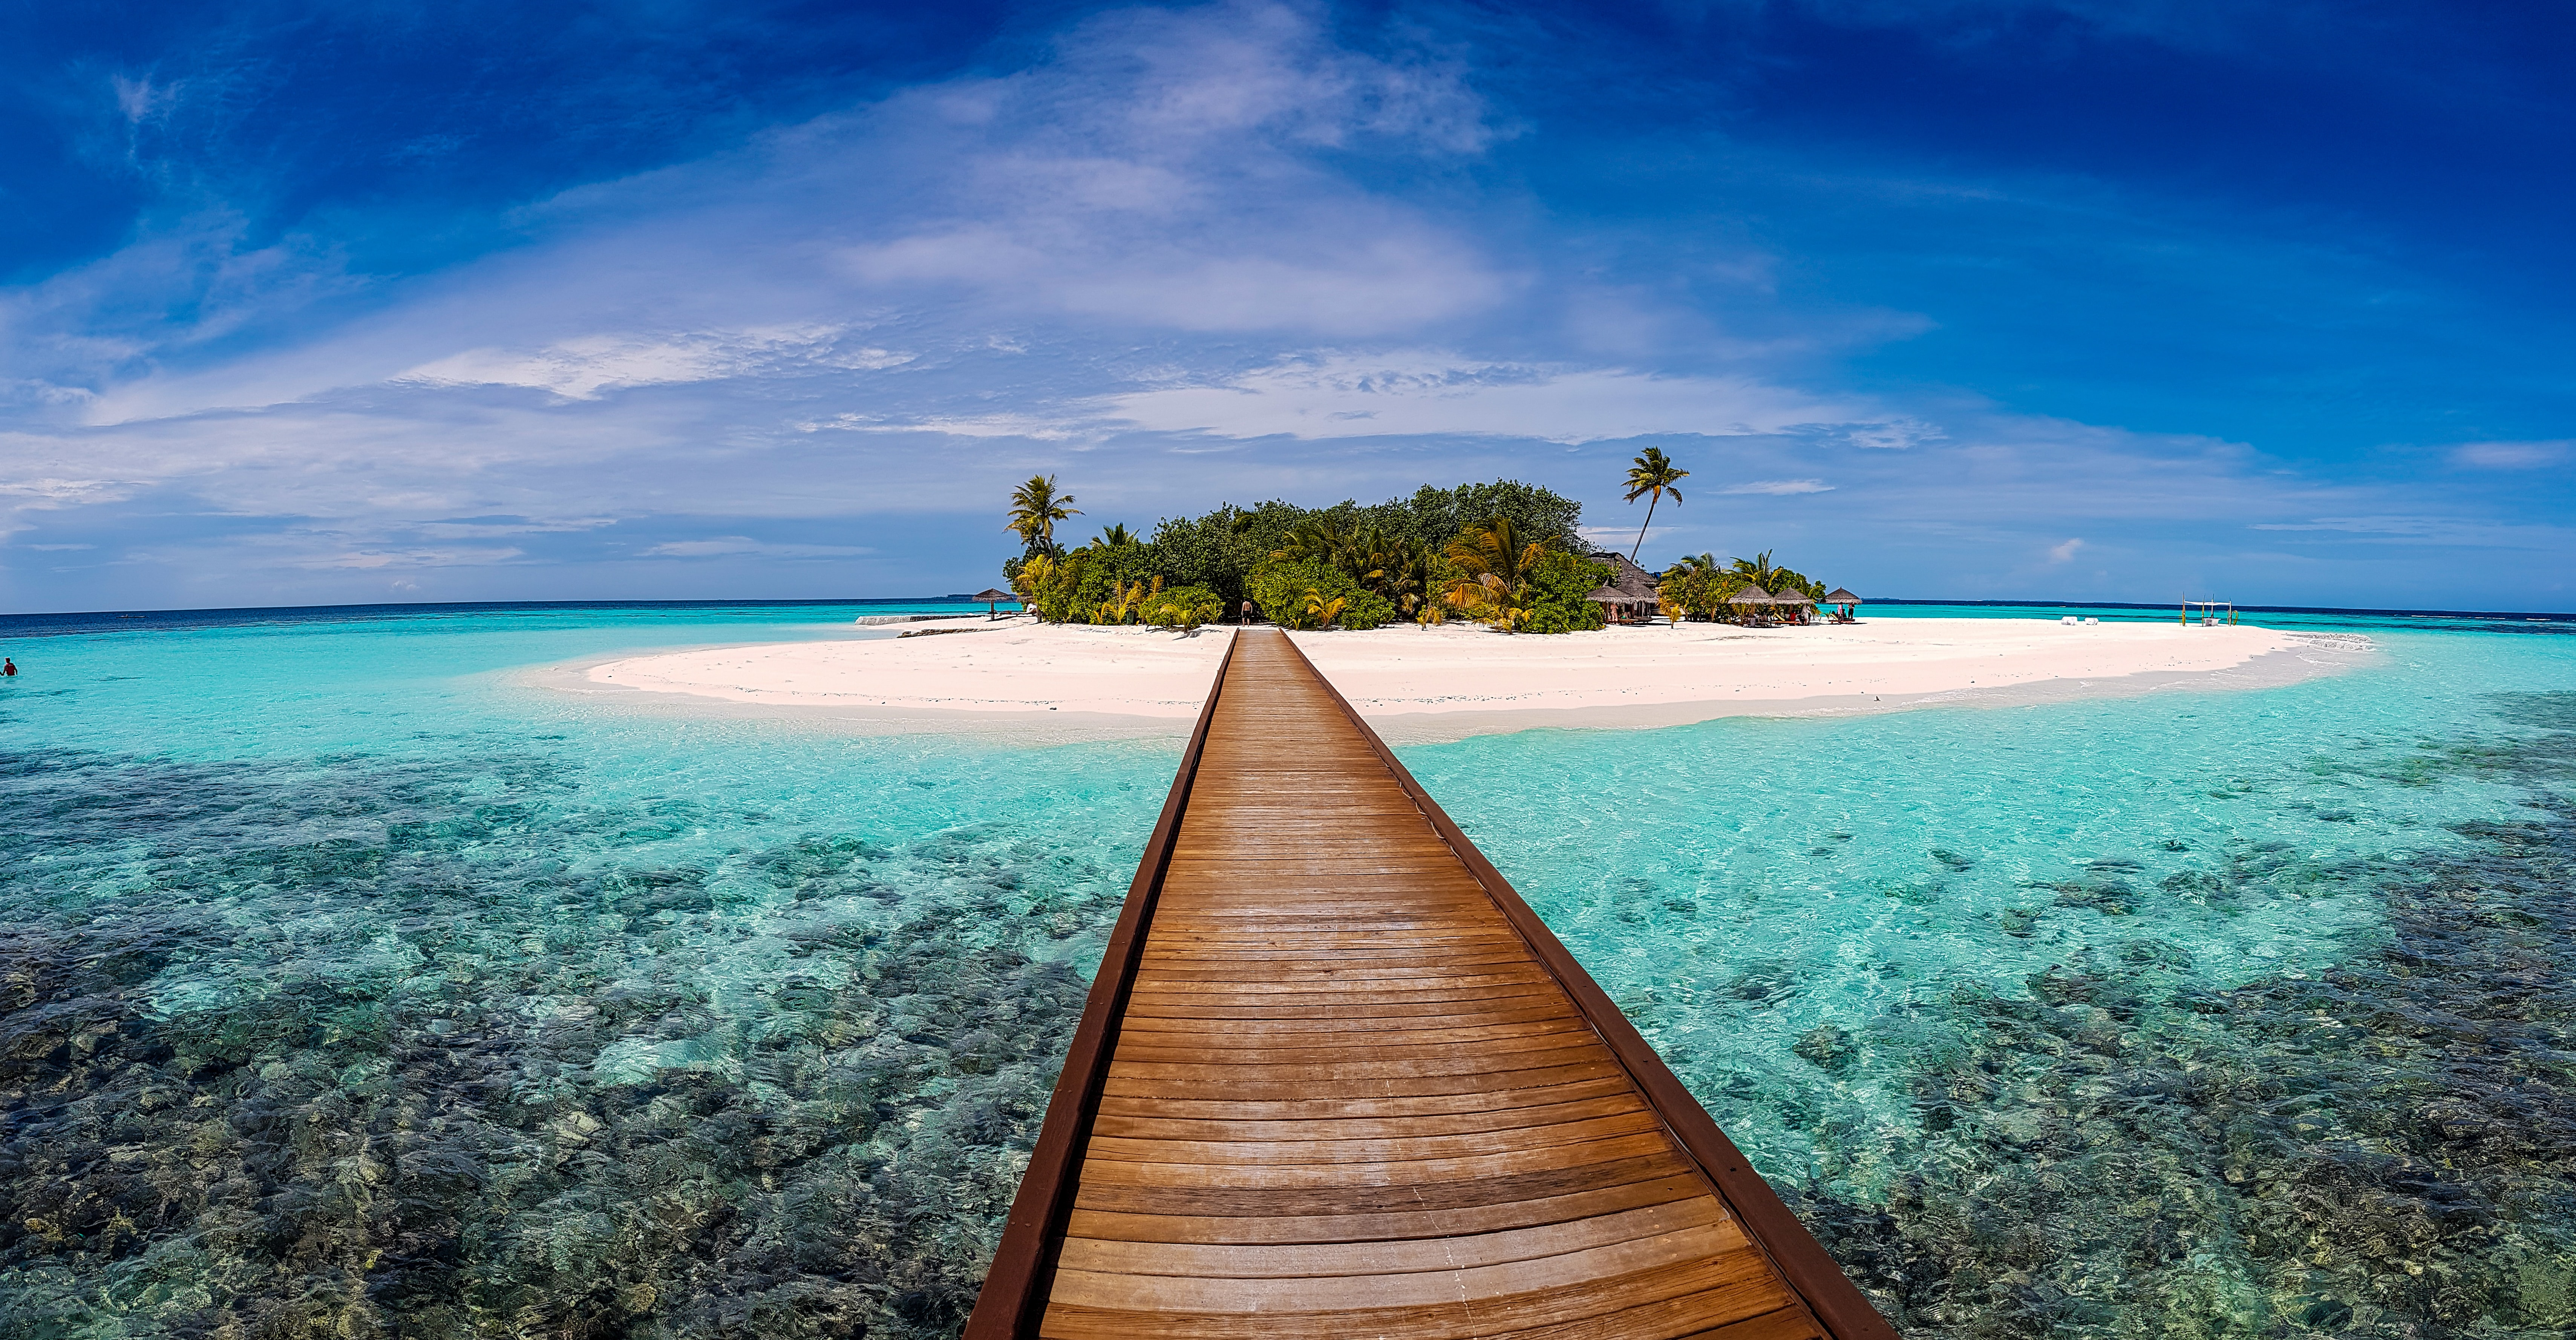 Sun Island Resort Alif Dhaal Atoll Maldives Pictures